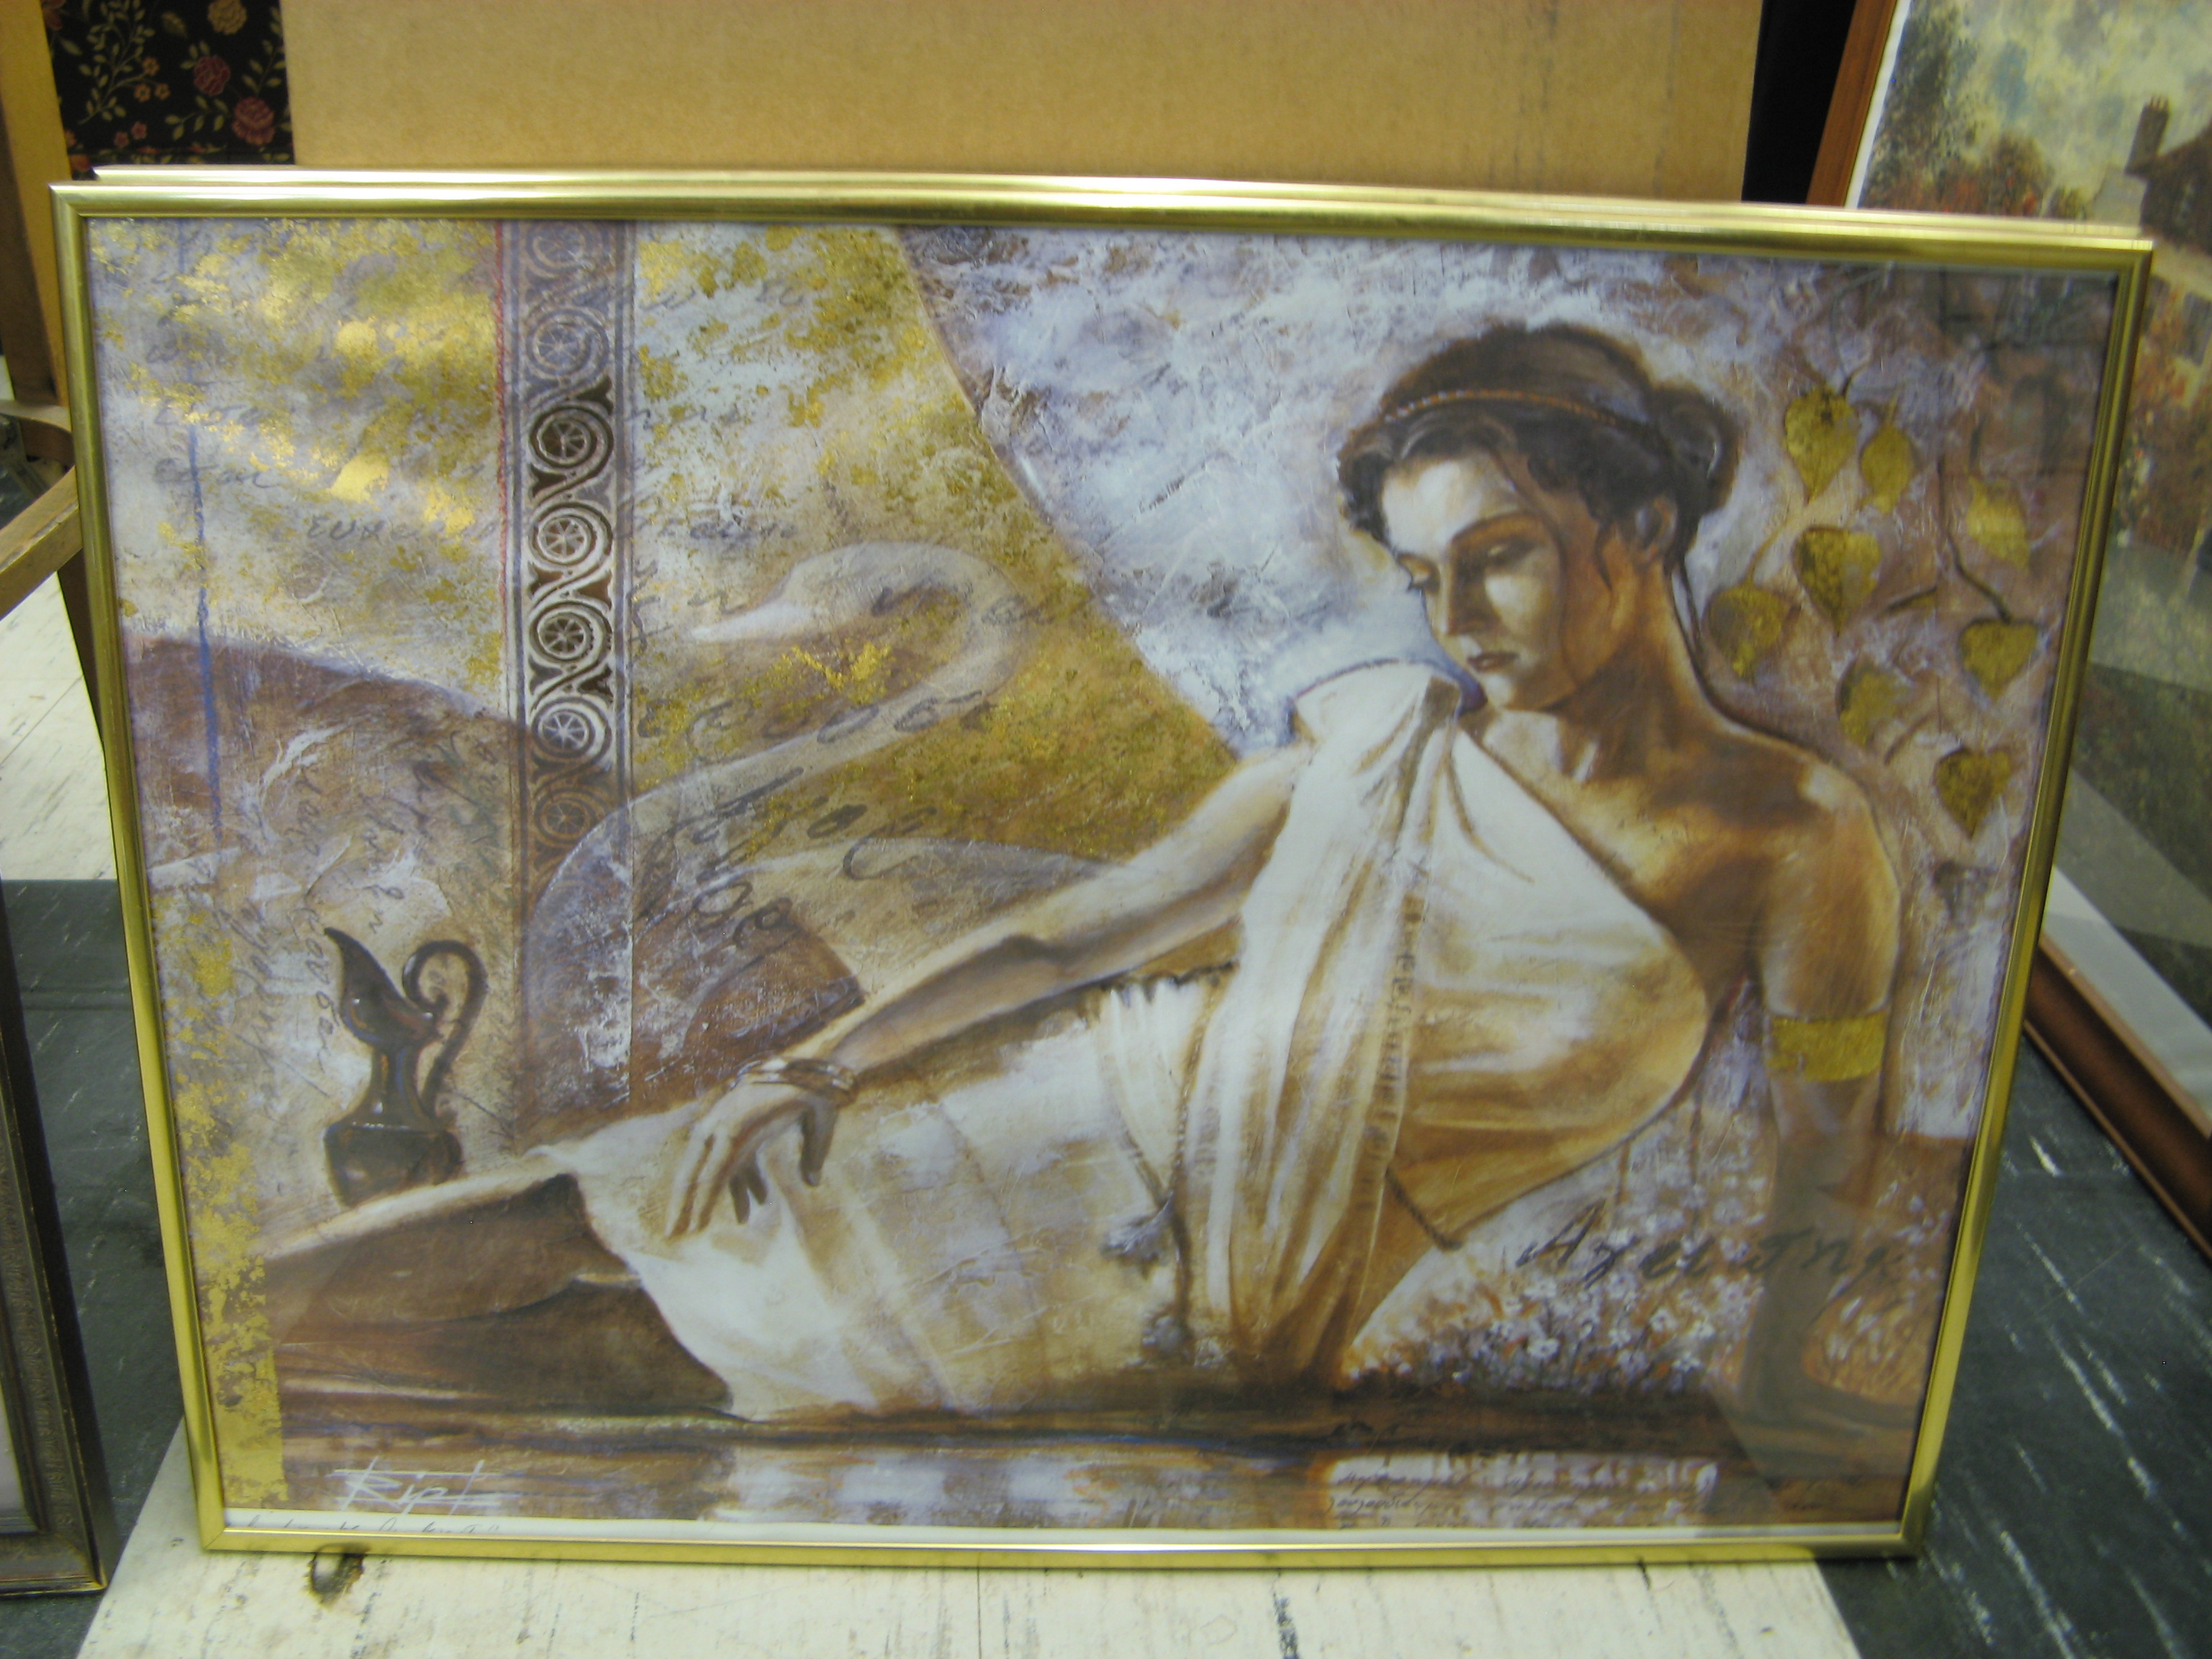 Wall Art of Young Woman in Ancient Setting, Gold Frame